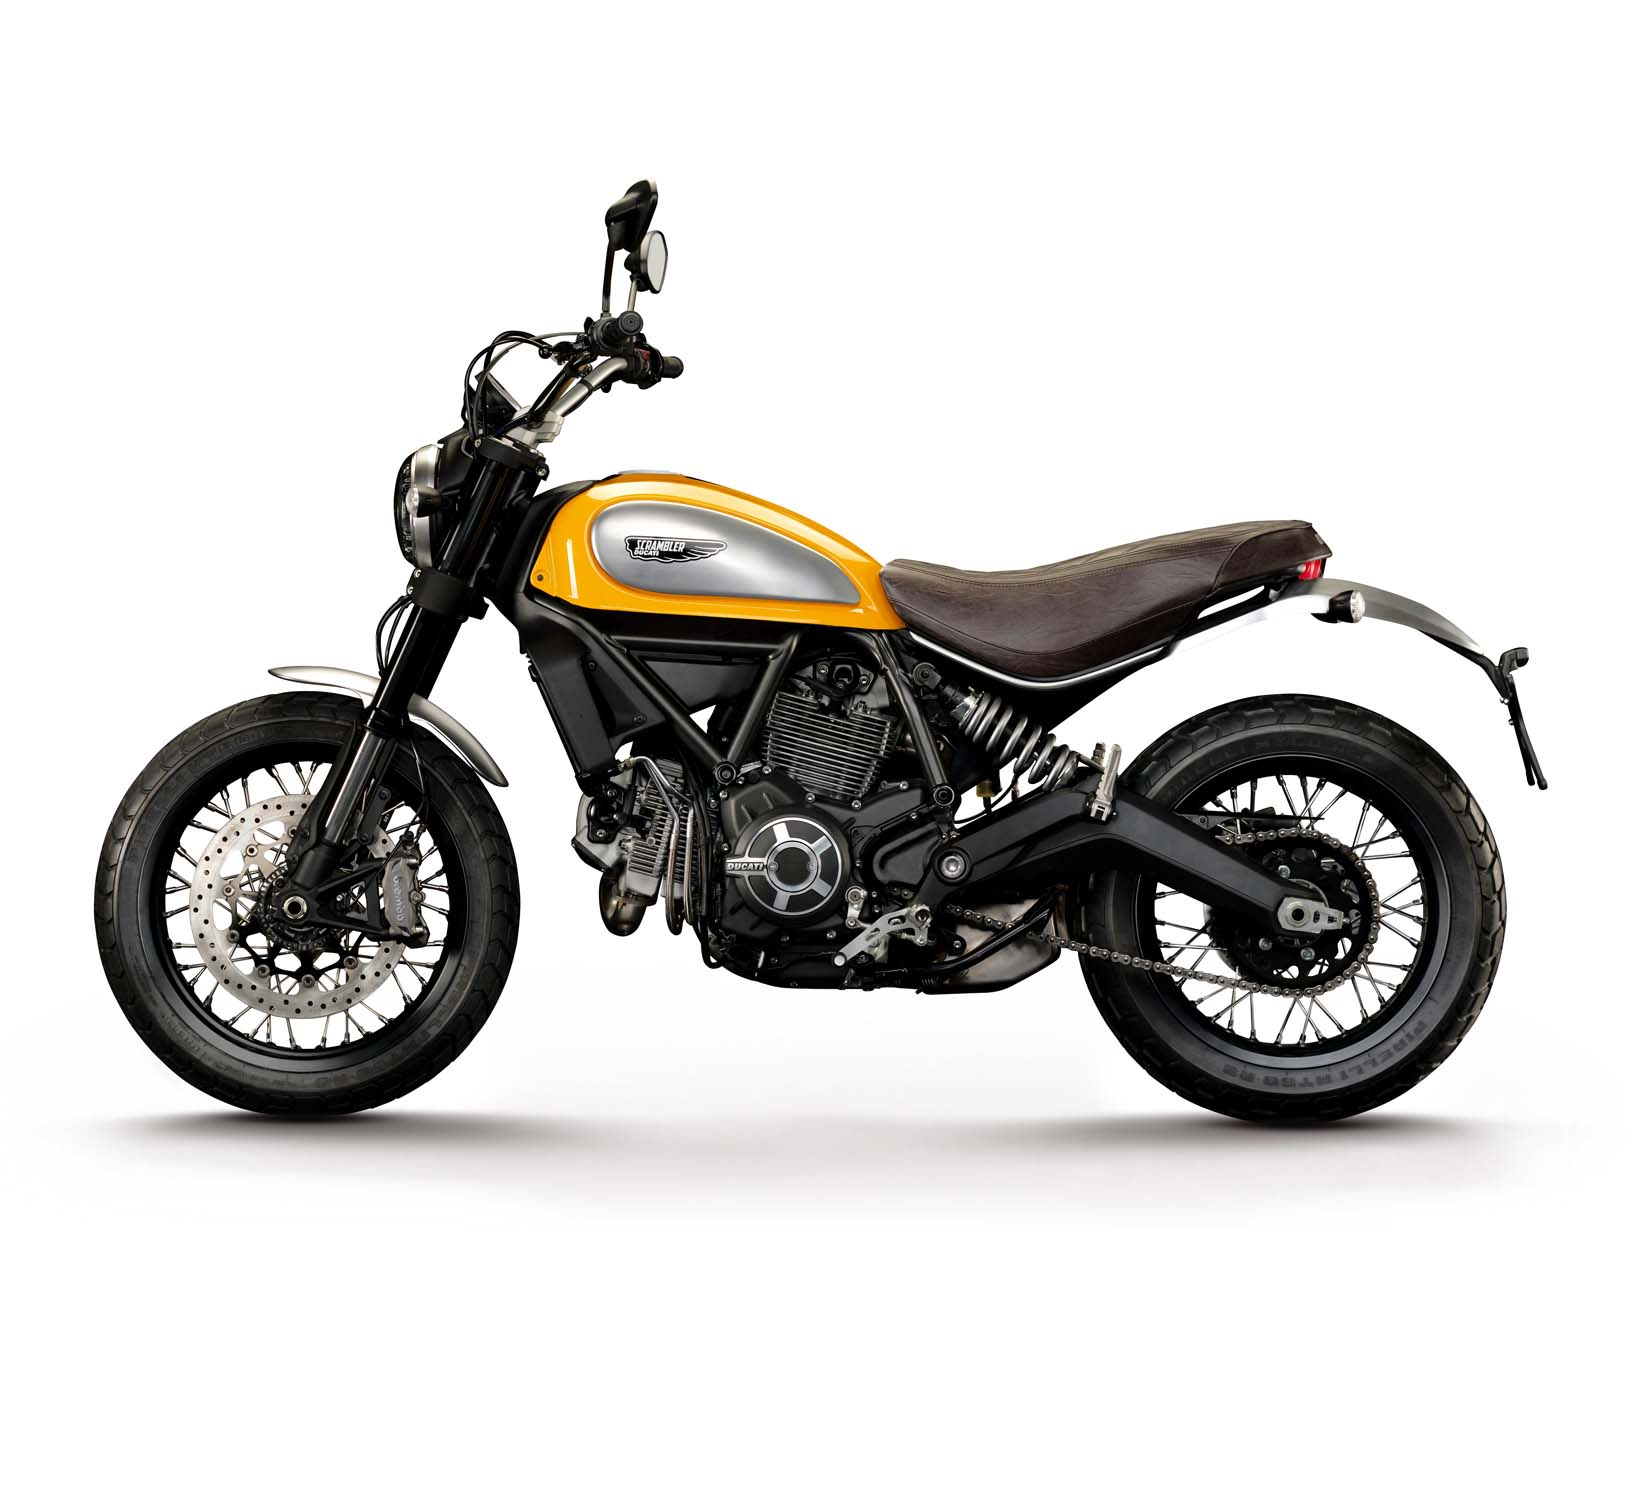 motorrad occasion ducati scrambler classic kaufen. Black Bedroom Furniture Sets. Home Design Ideas